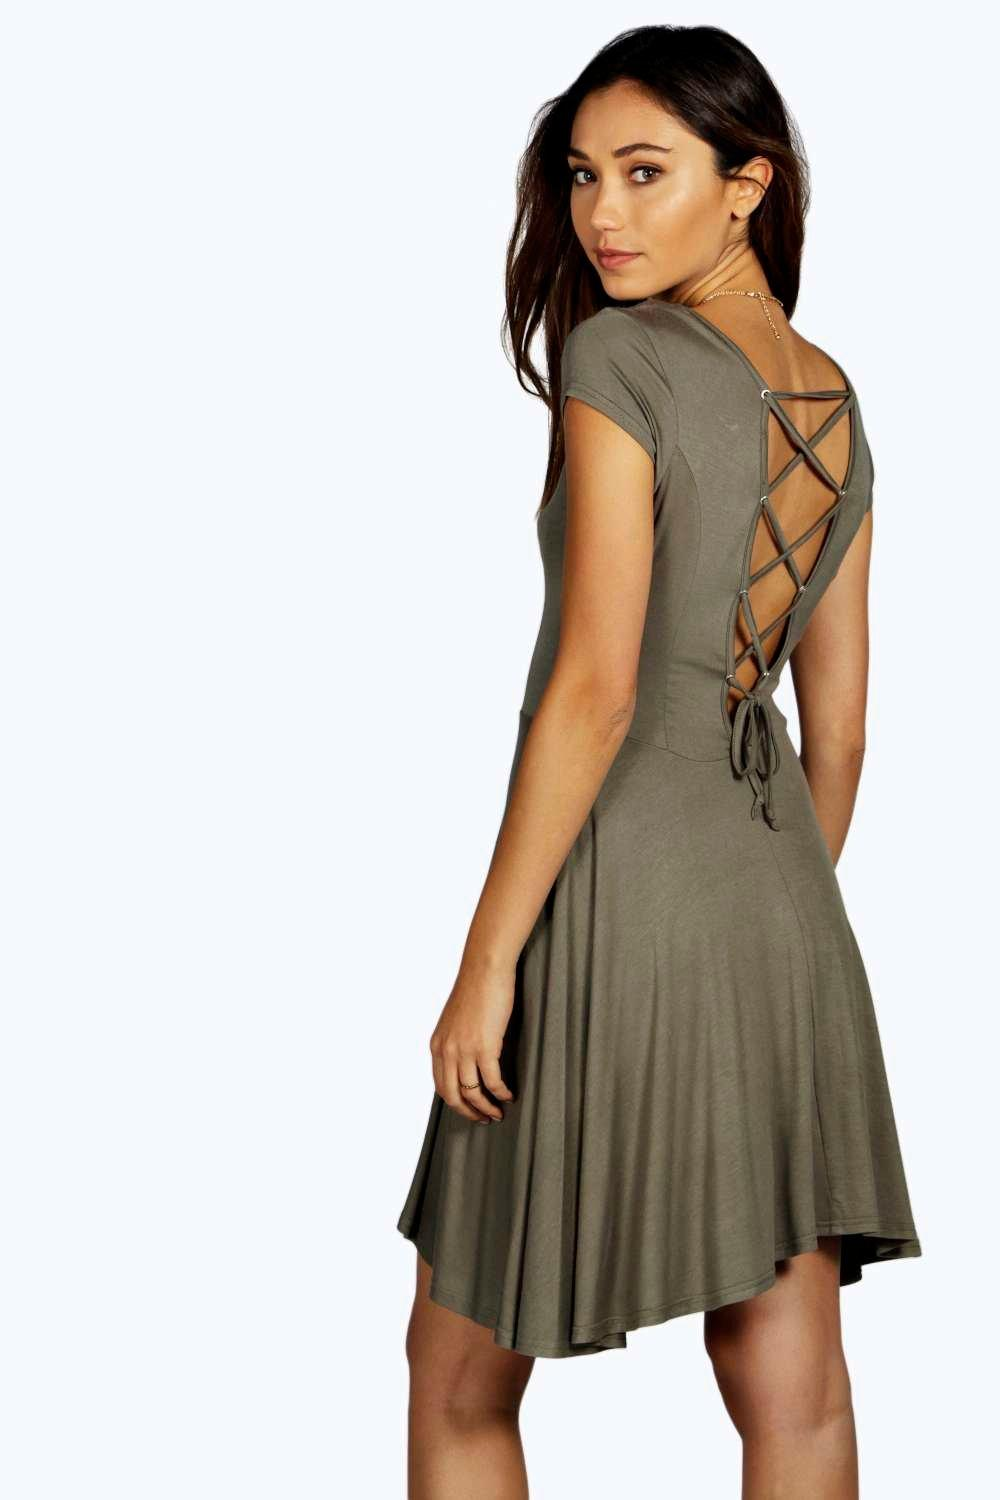 Madelinne Lace Up Back Skater Dress